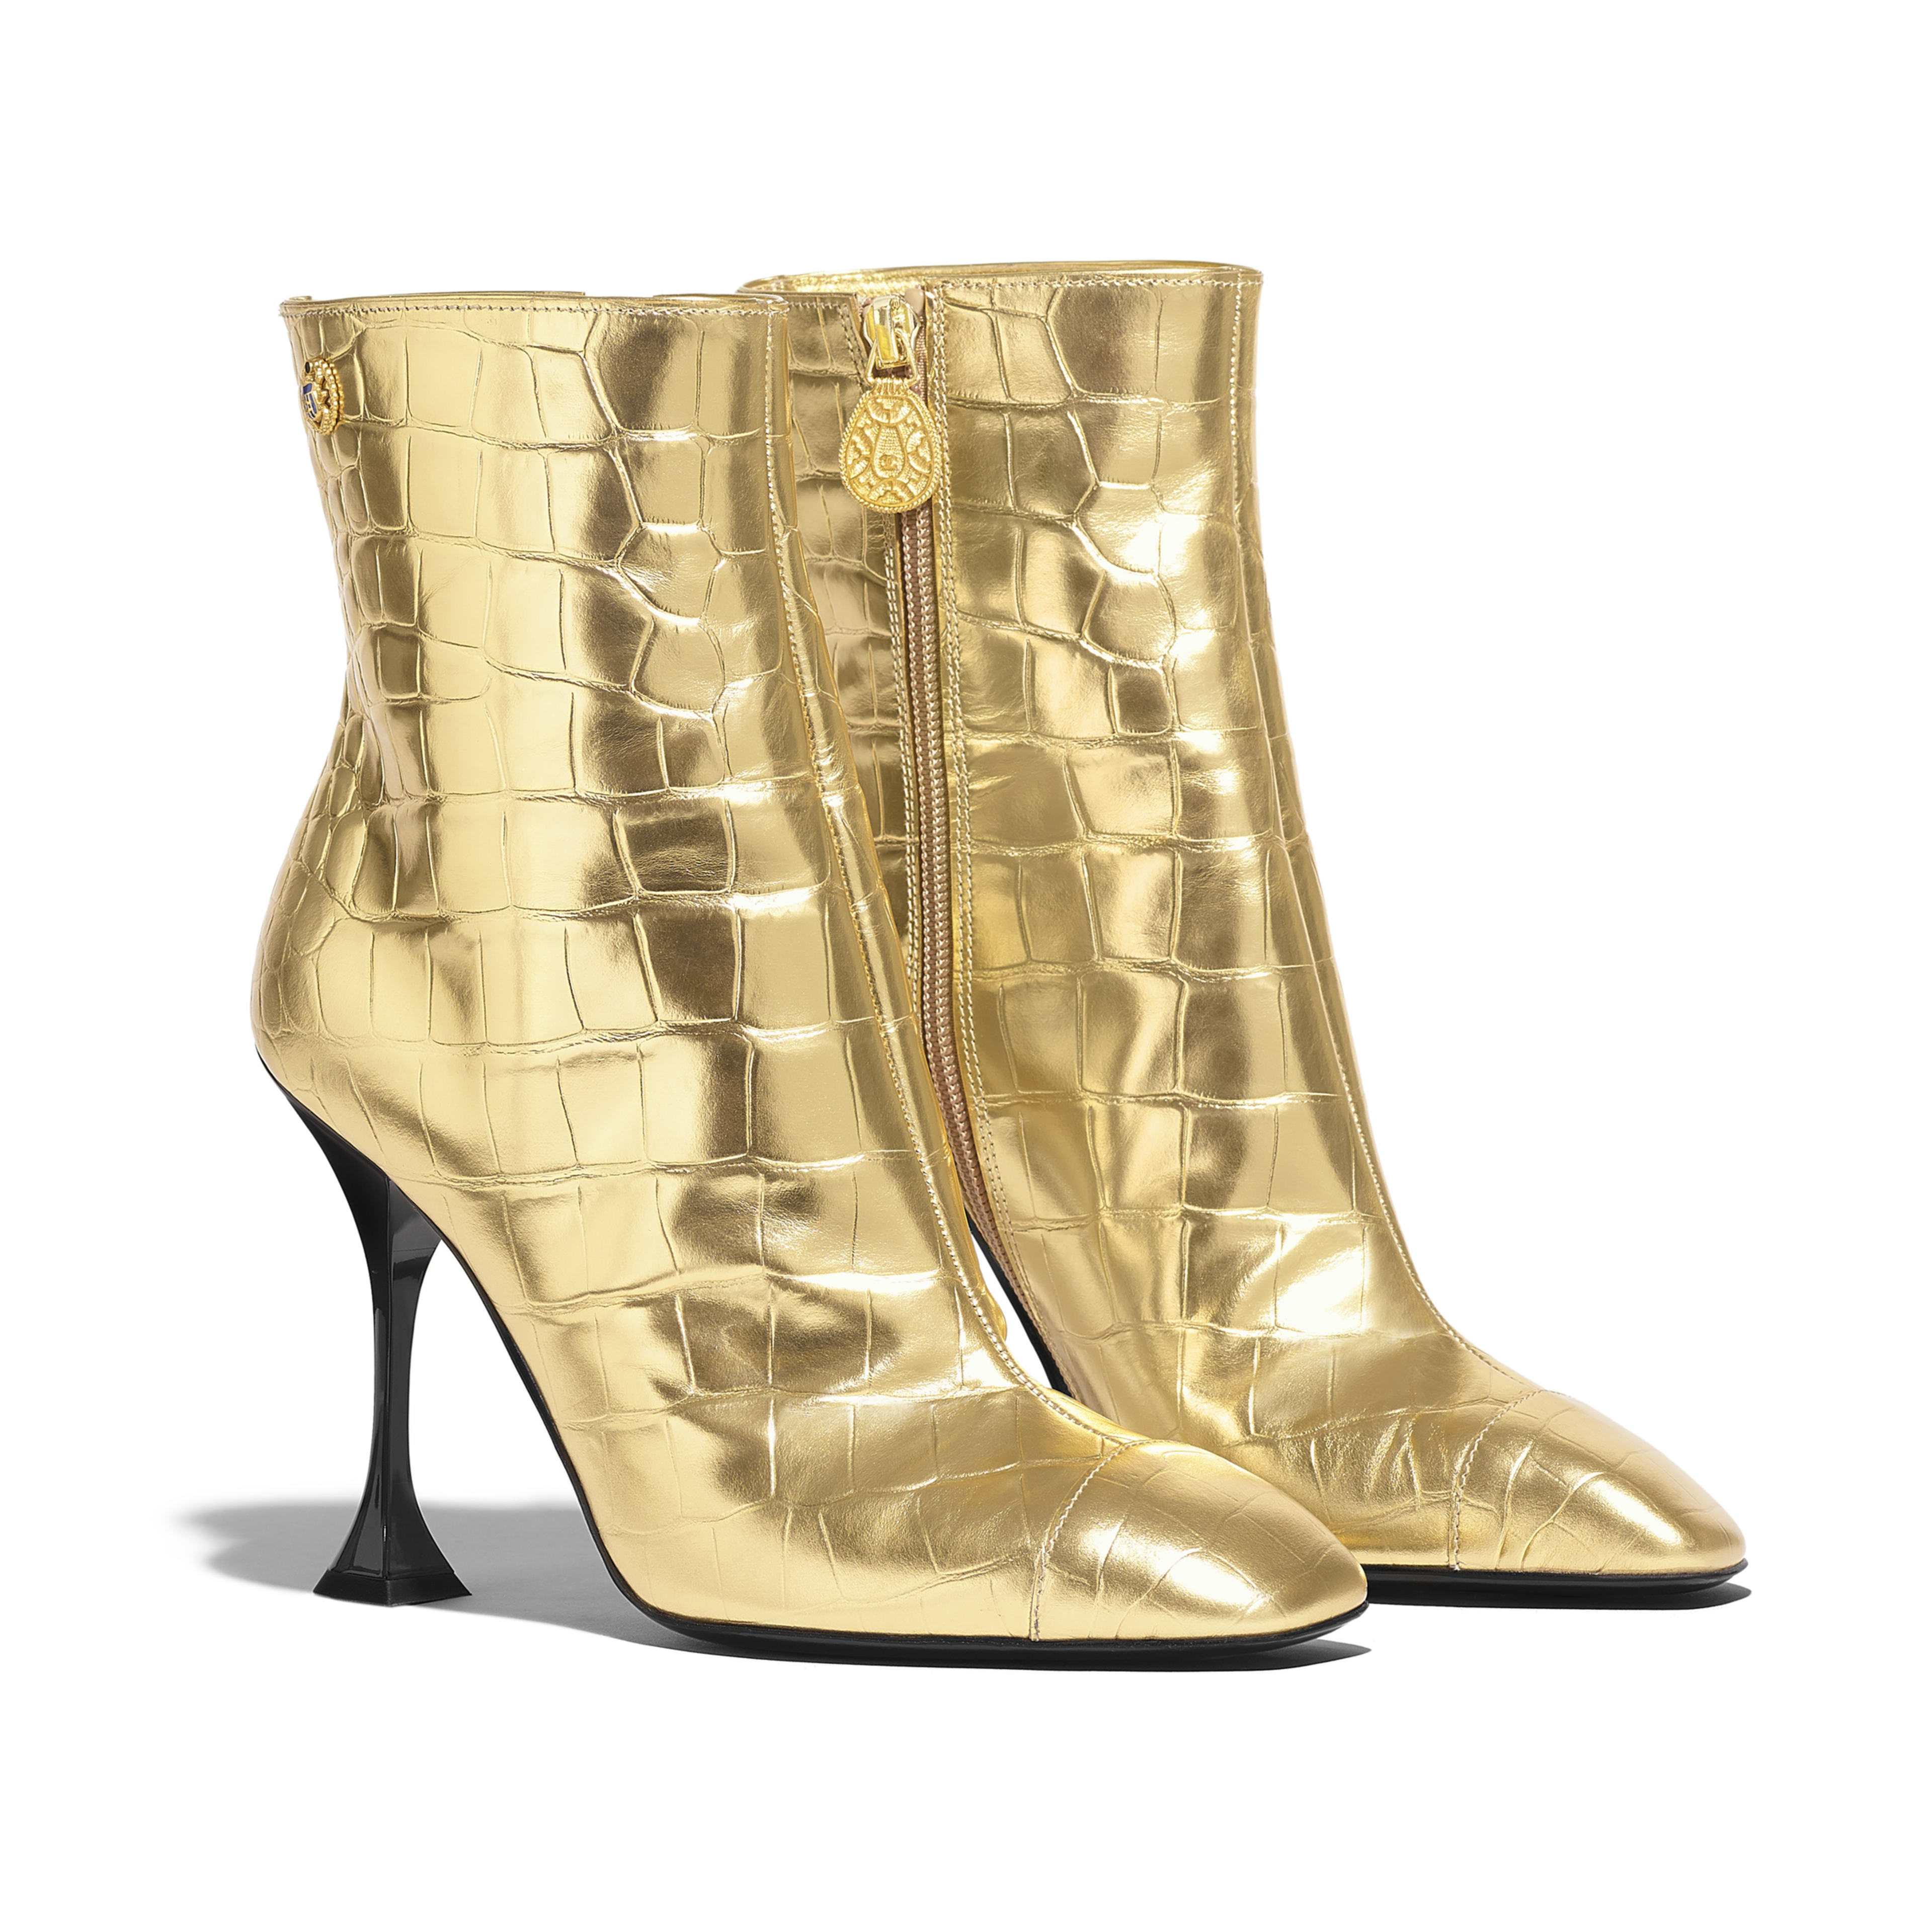 Ankle Boots - Gold - Crocodile Embossed Metallic Calfskin - Alternative view - see full sized version